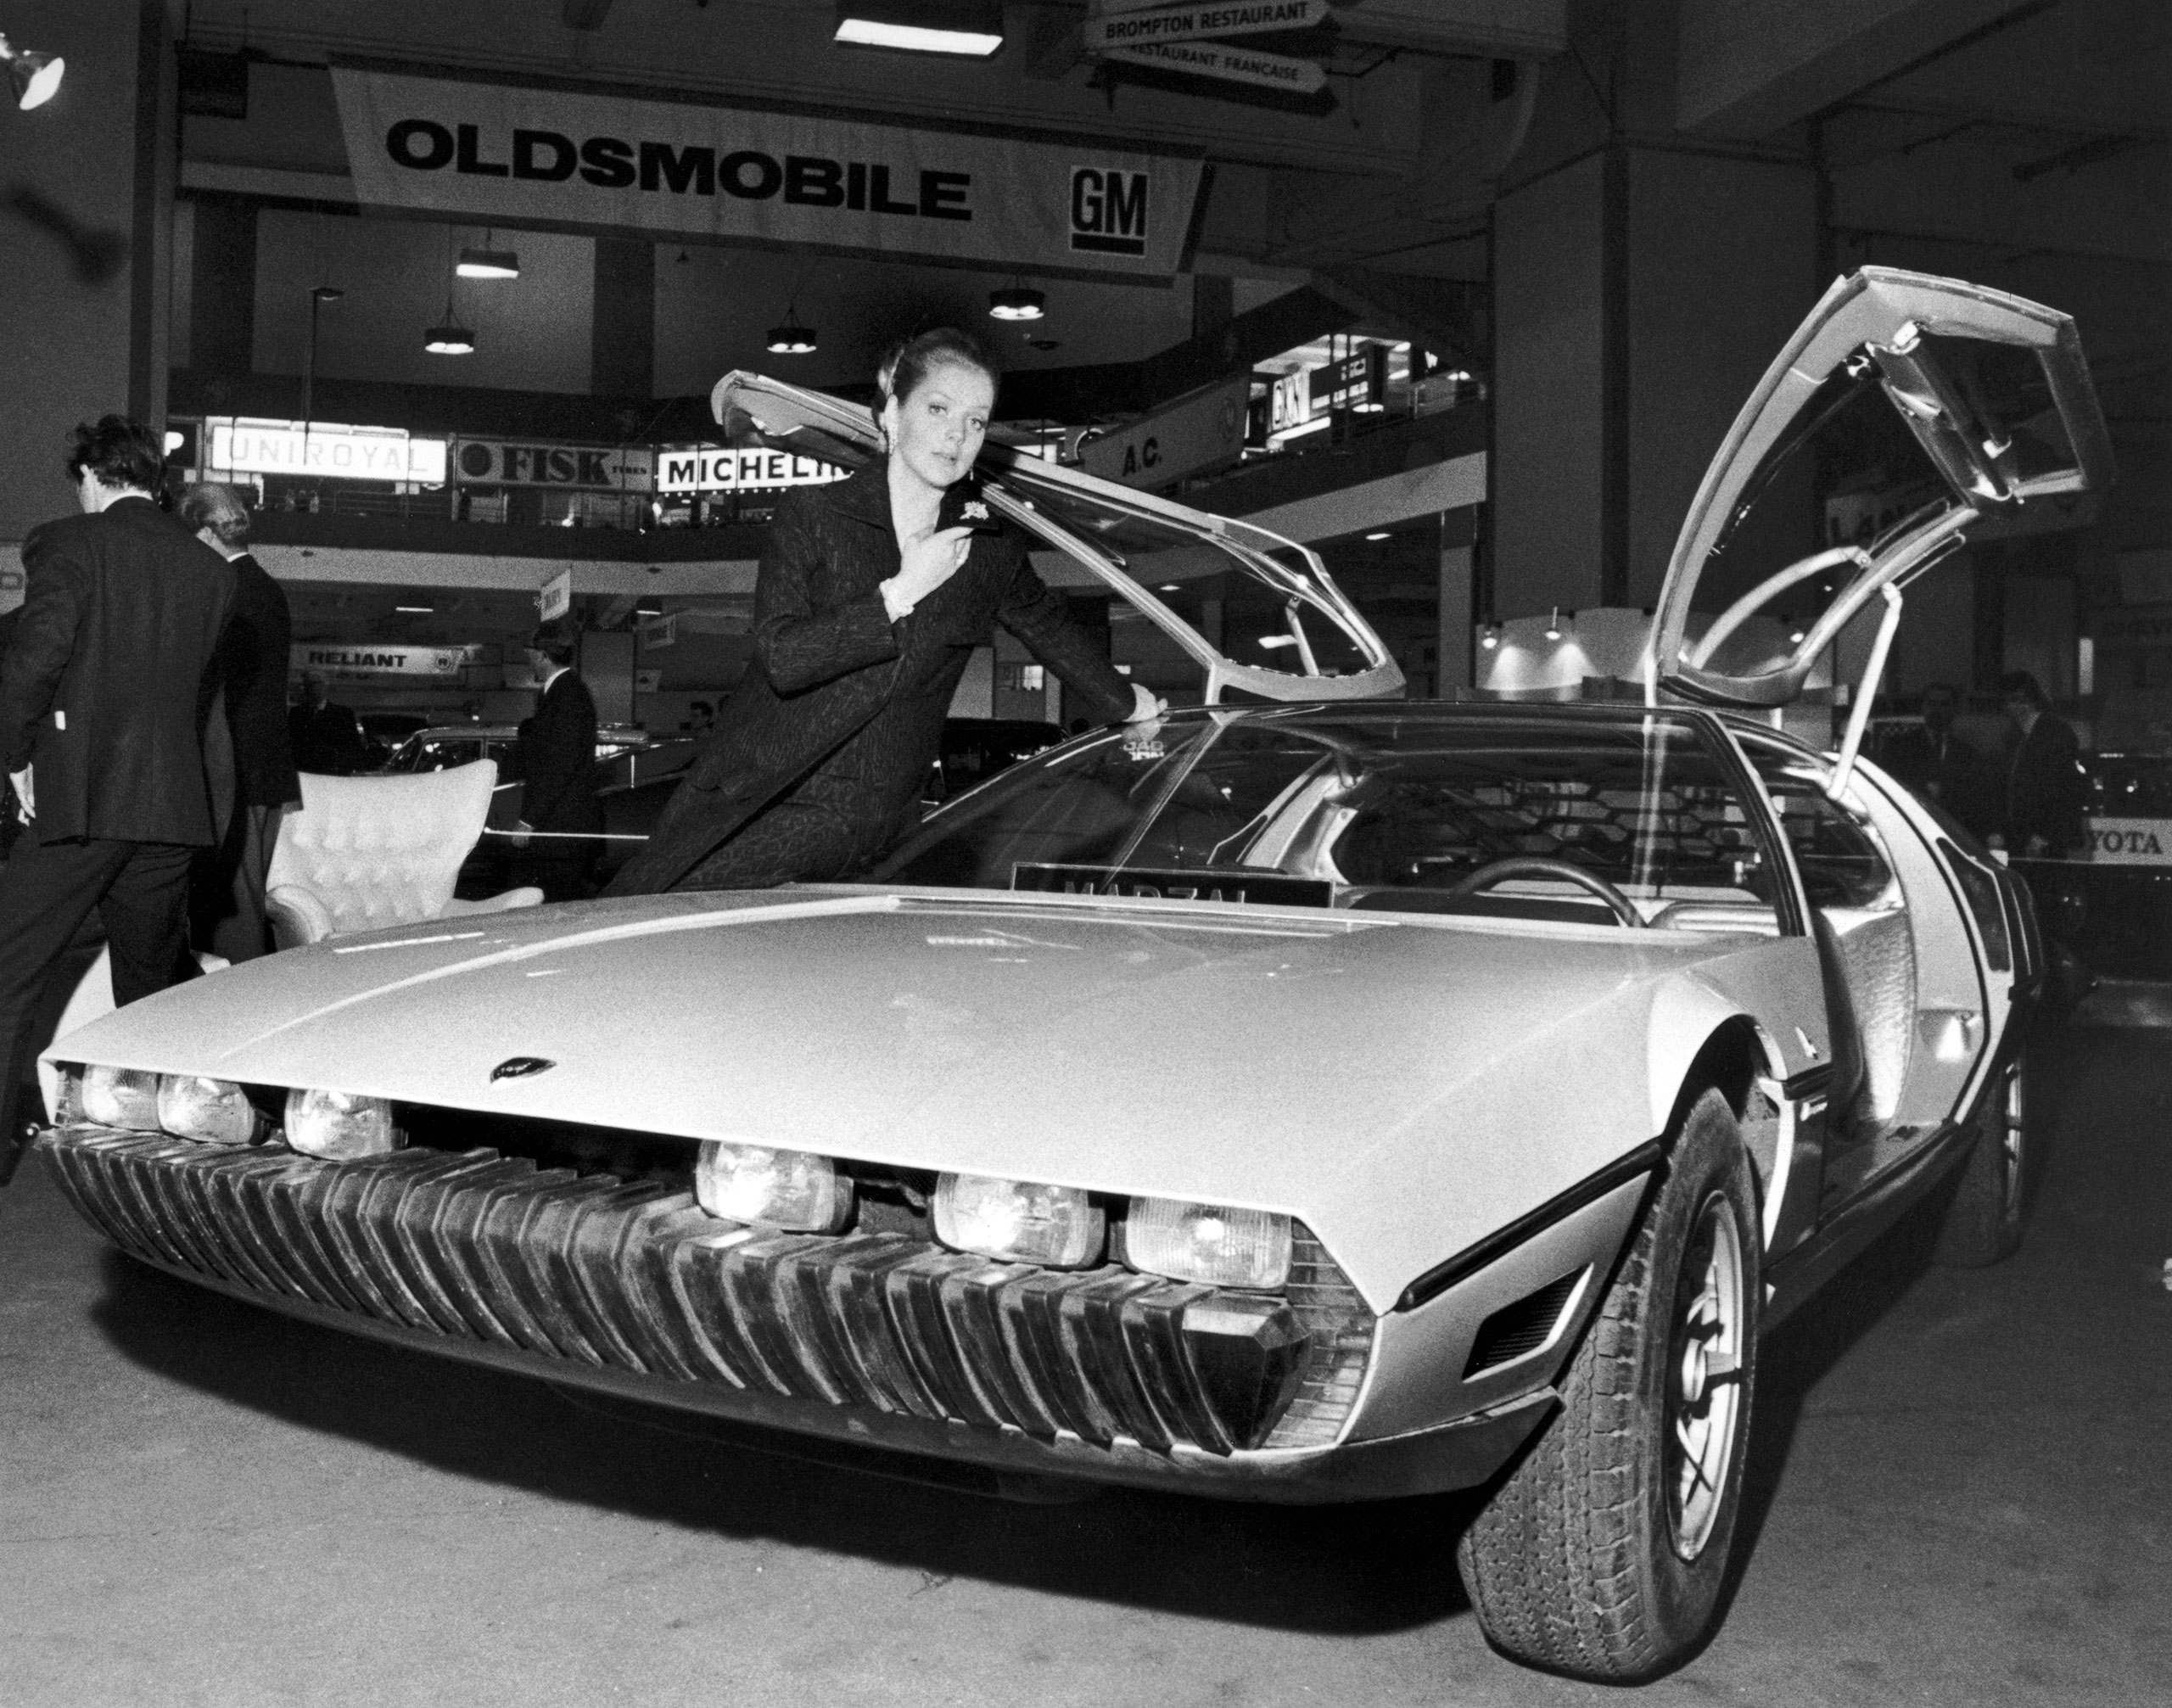 The Lamborghini Marzal, a one-off prototype concept car, designed by by Marcello Gandini of the Bertone design studio, at a preview of the London Motor Show at Earl's Court, Oct. 17, 1967.